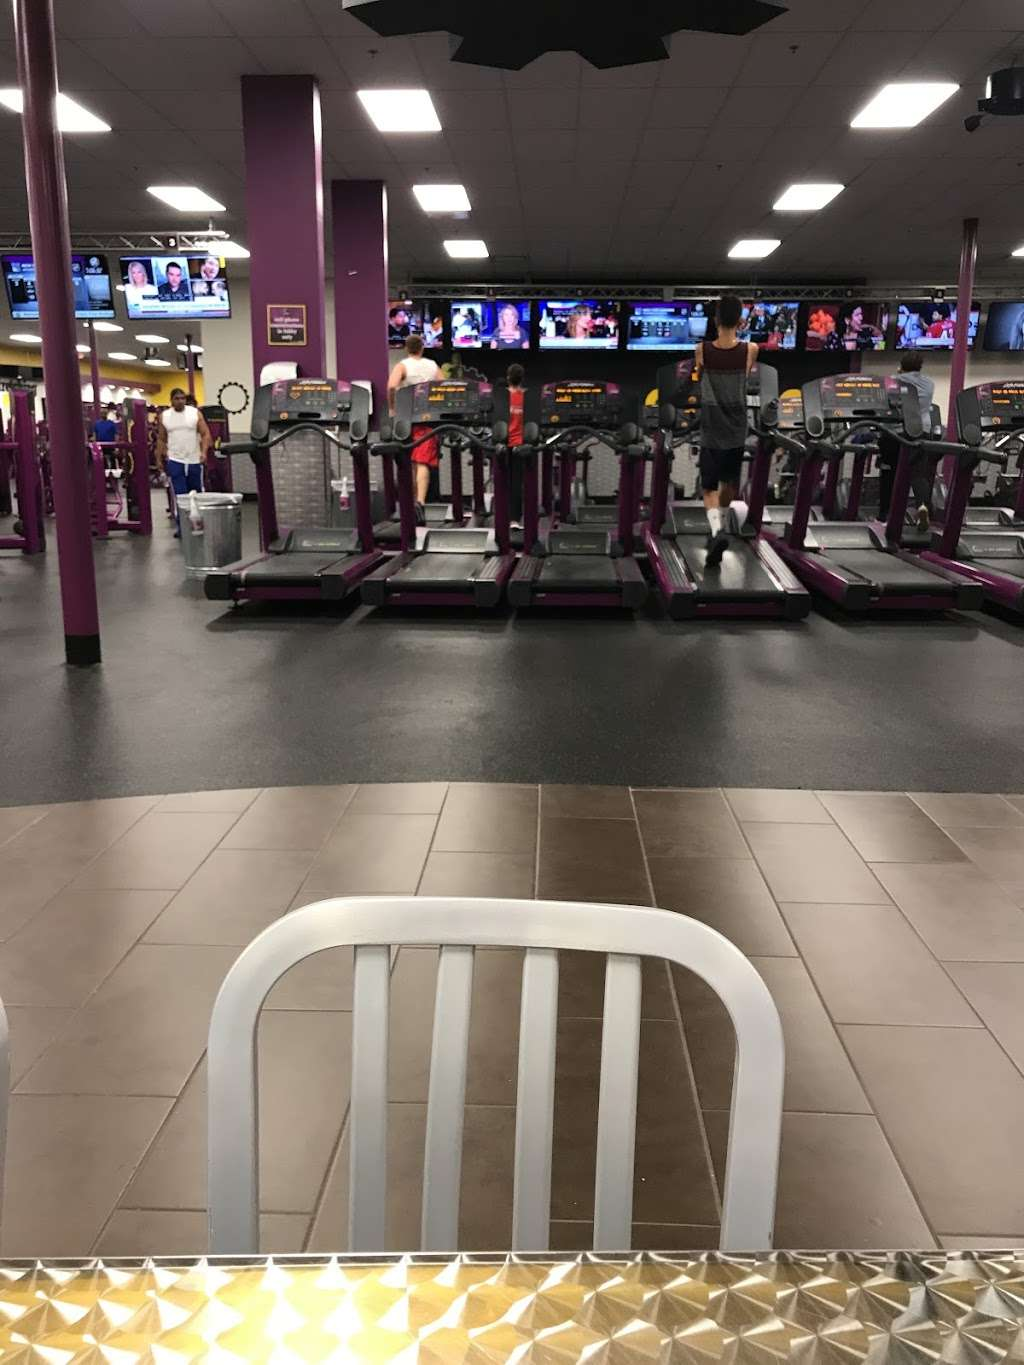 Planet Fitness Somerset Ky : planet, fitness, somerset, Planet, Fitness, Somerset, FitnessRetro